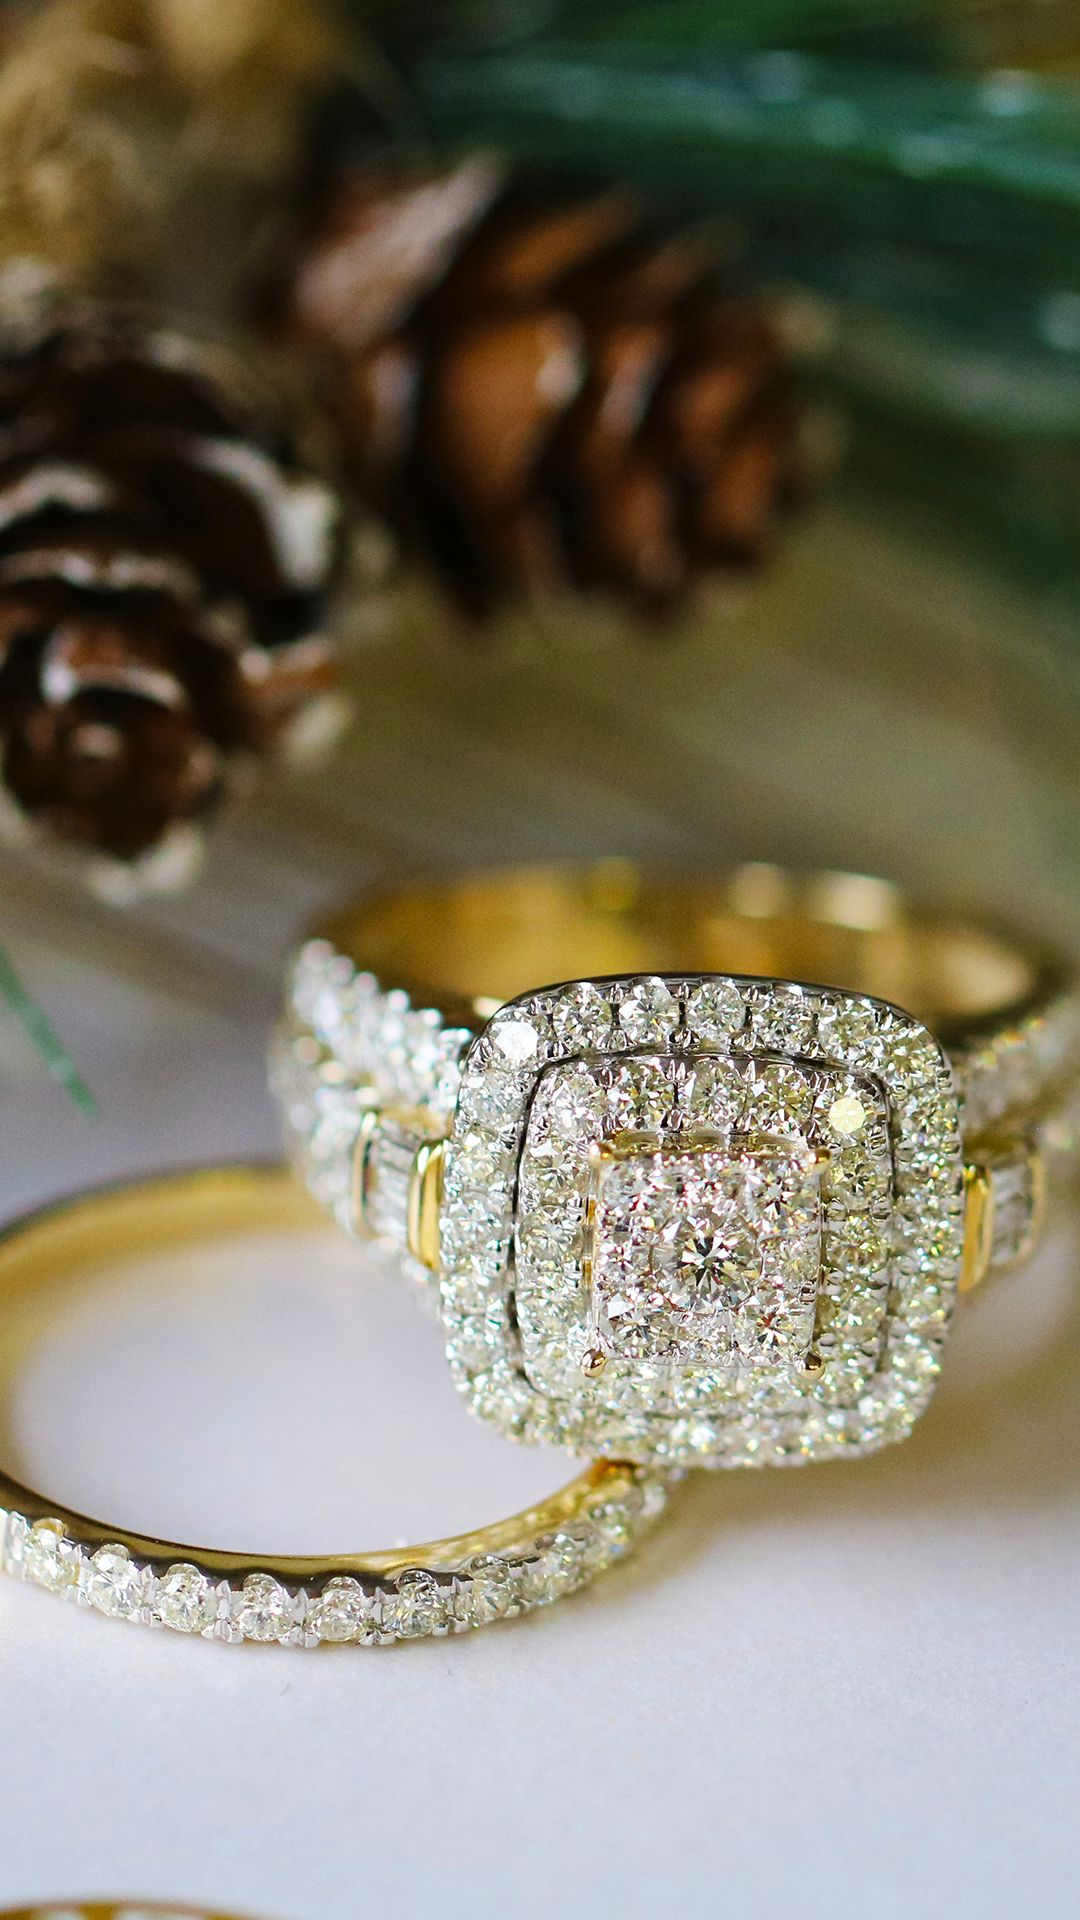 Yellow Gold Plus Size Diamond Bridal Set By My Trio Rings Crafted In Sizes 11 20 Explore More Matching En Bridal Ring Sets Diamond Bridal Sets Black Jewelry